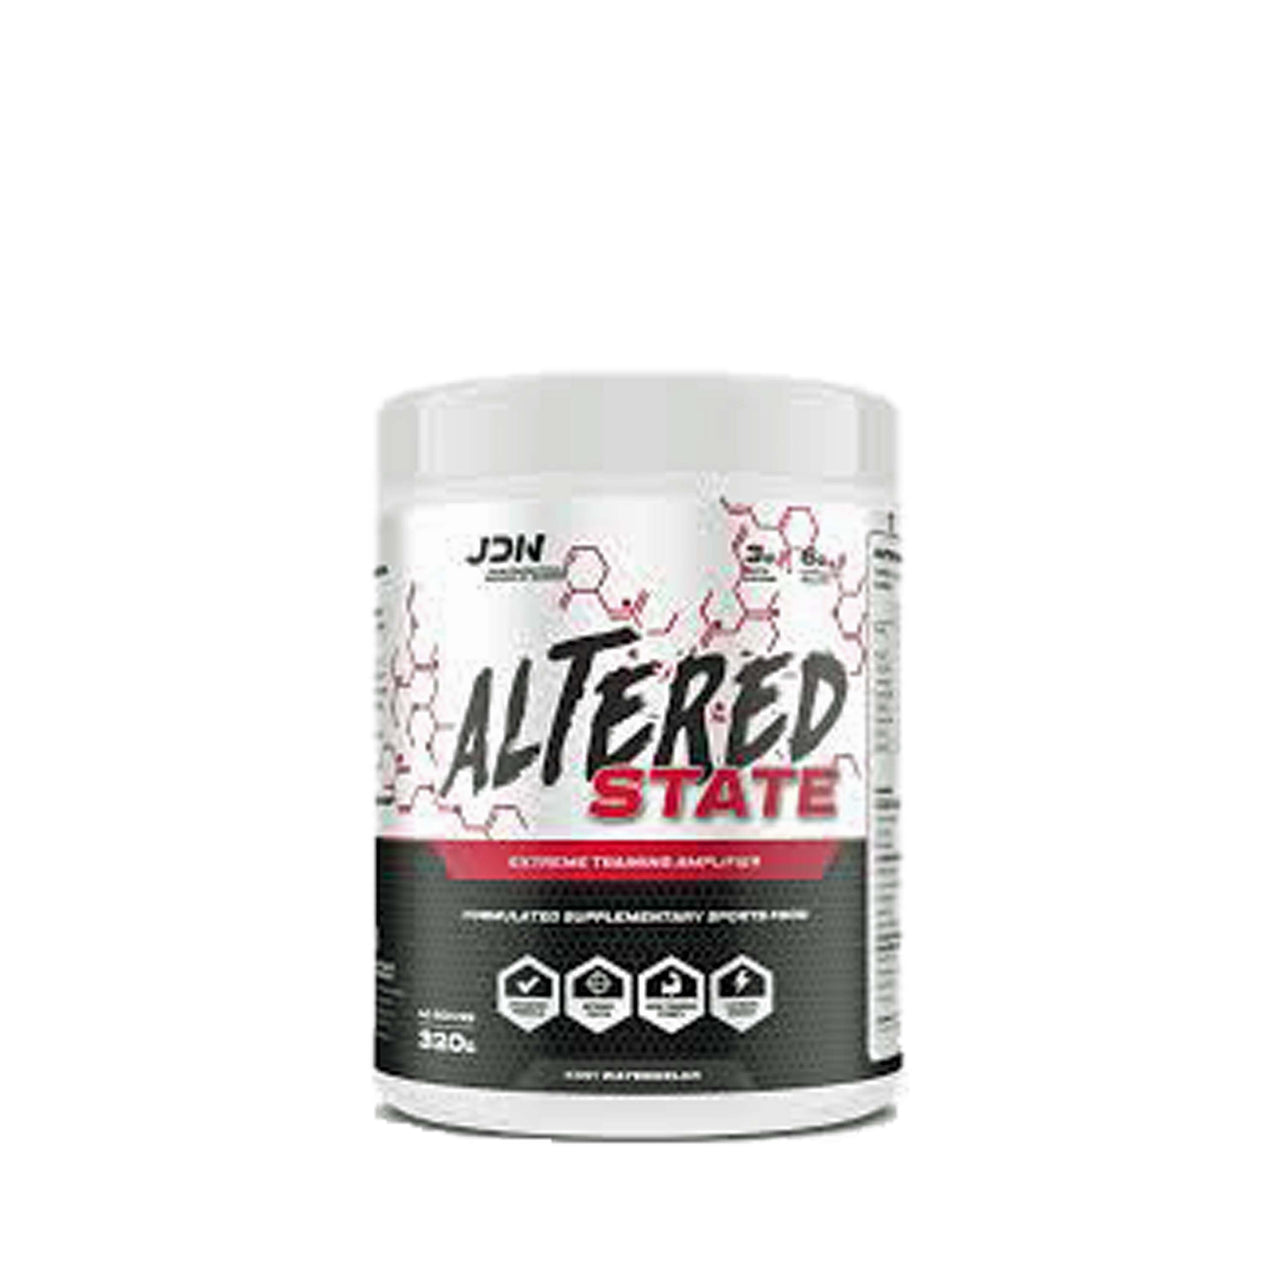 JDN Altered State 20/40 Srv, JD Nutraceuticals - Nutrition Co Australia